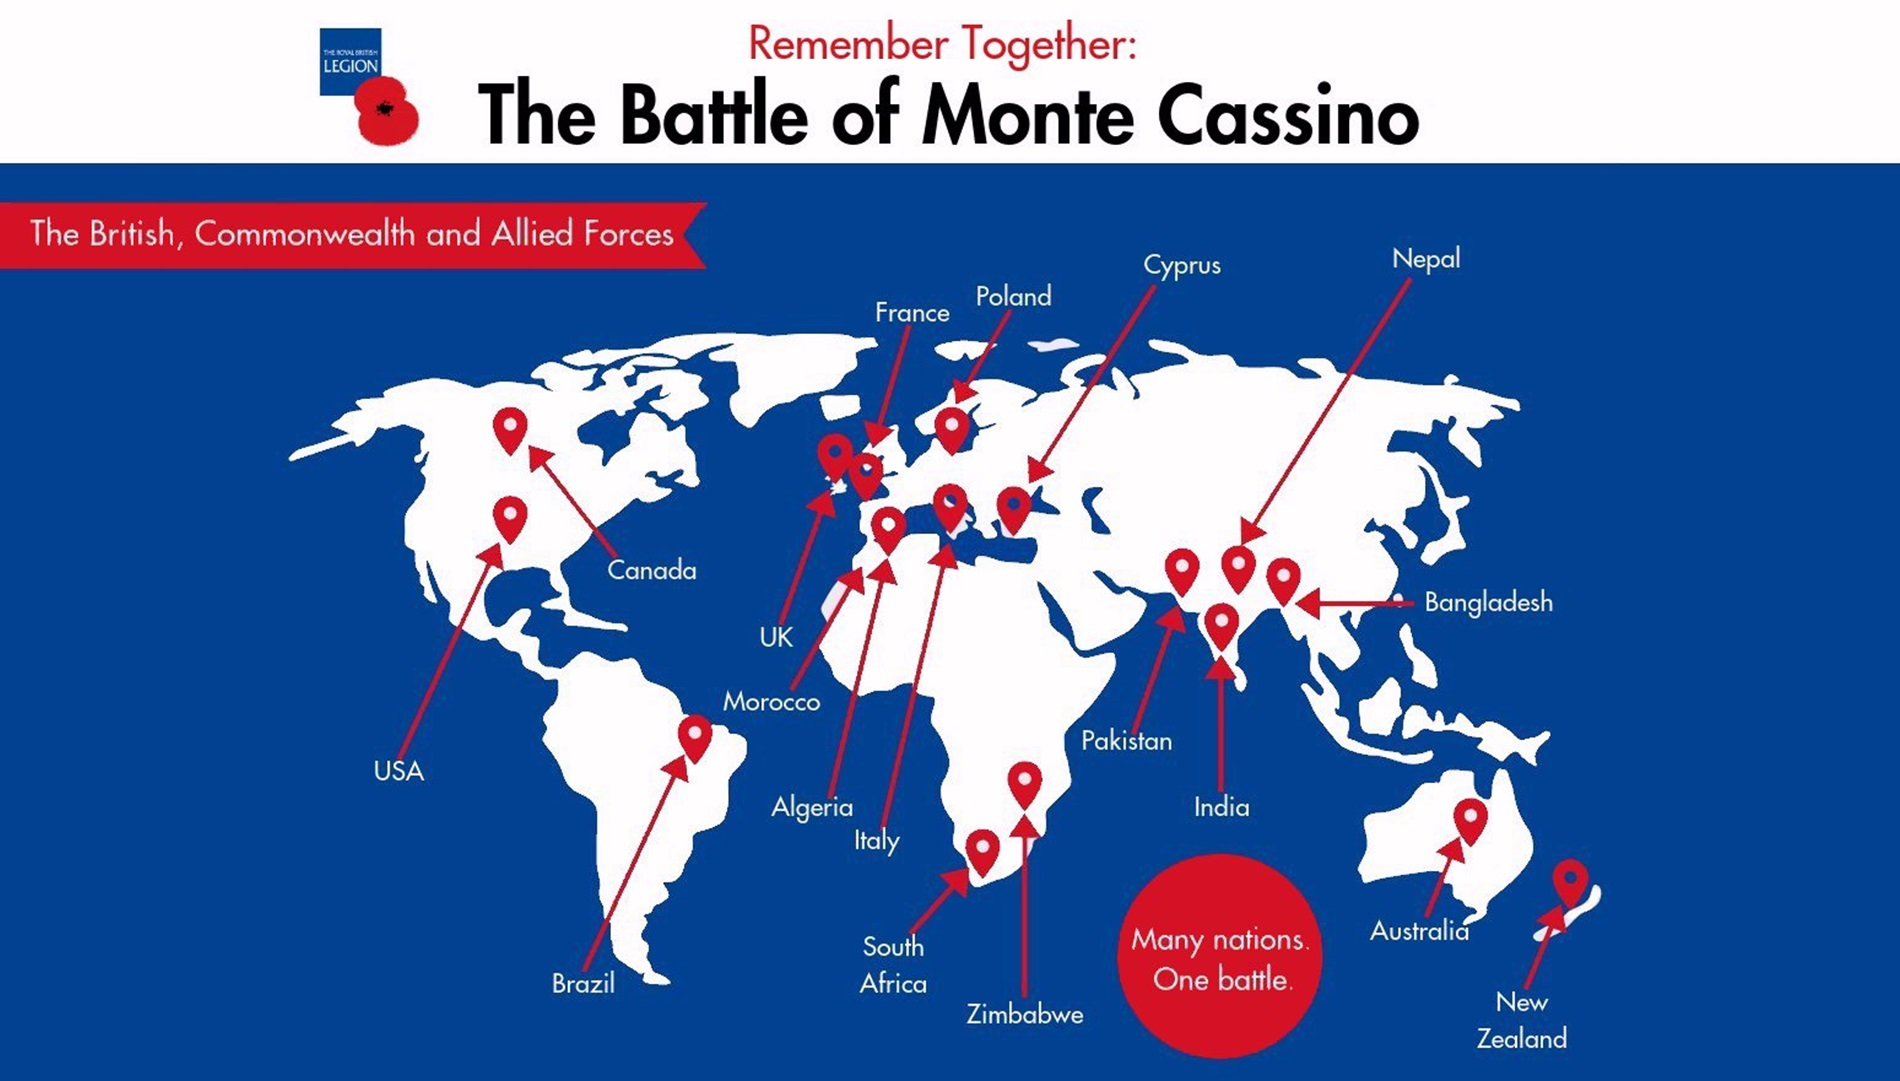 Infographic map showing where the forces at Monte Cassino came from